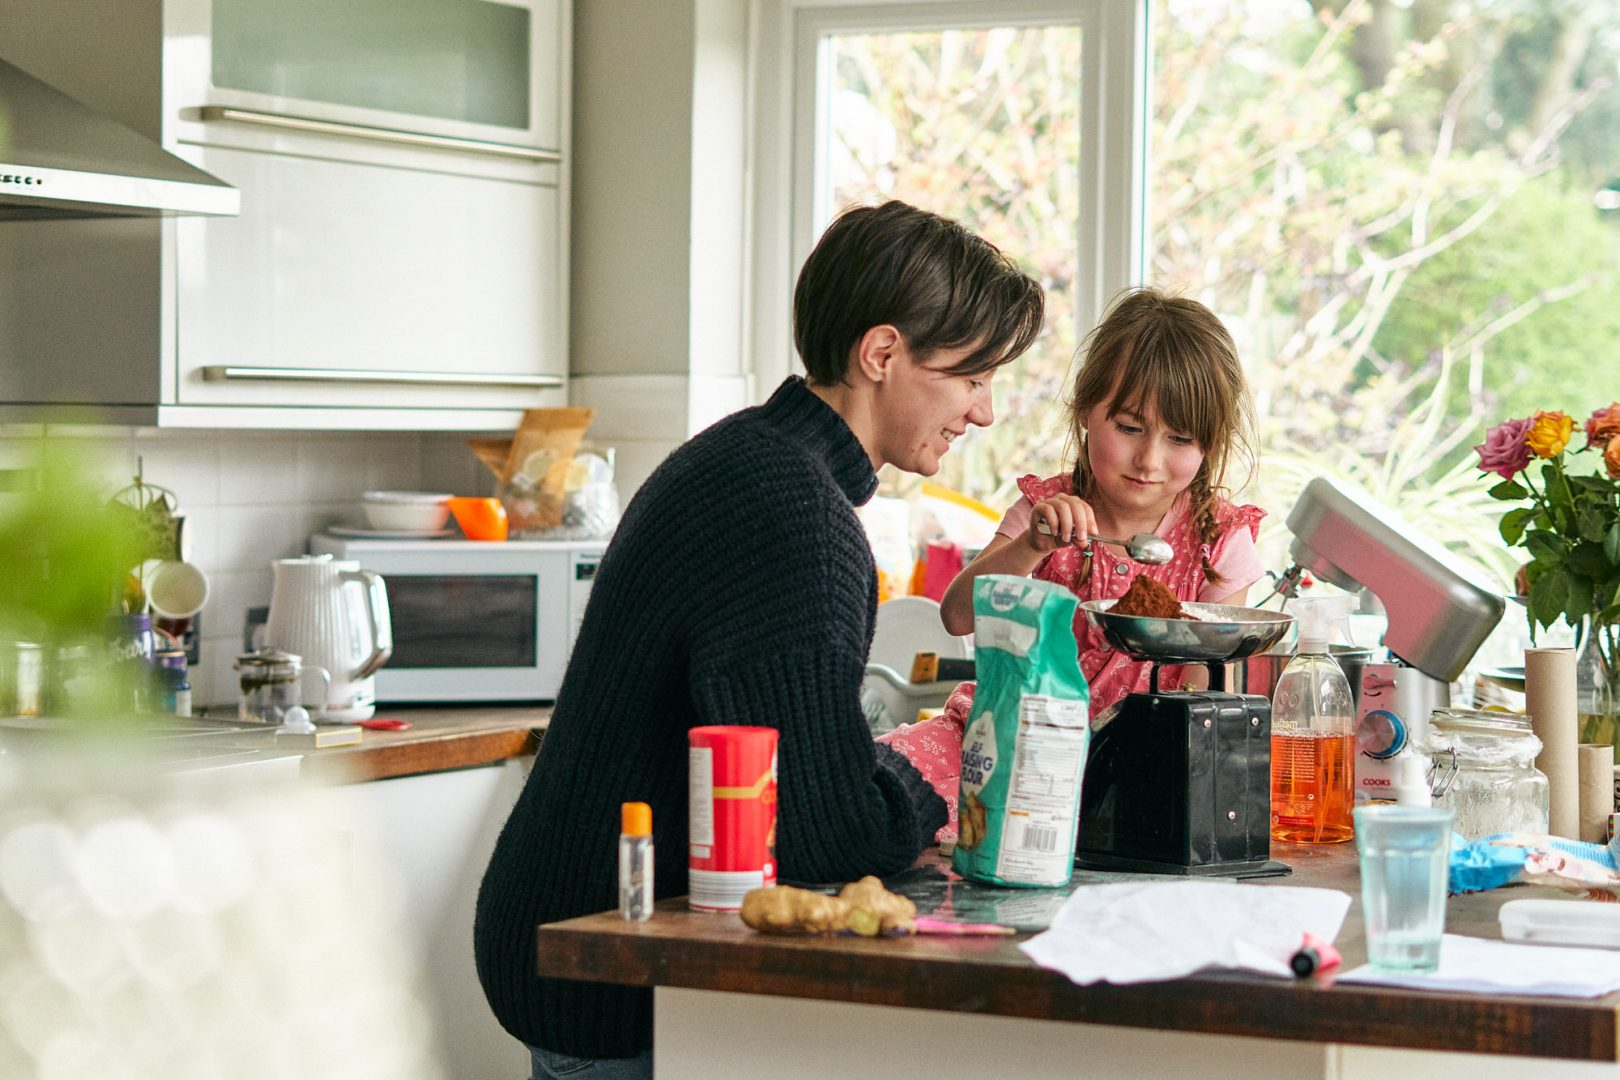 self portrait of mum and daughter baking at home during lockdown